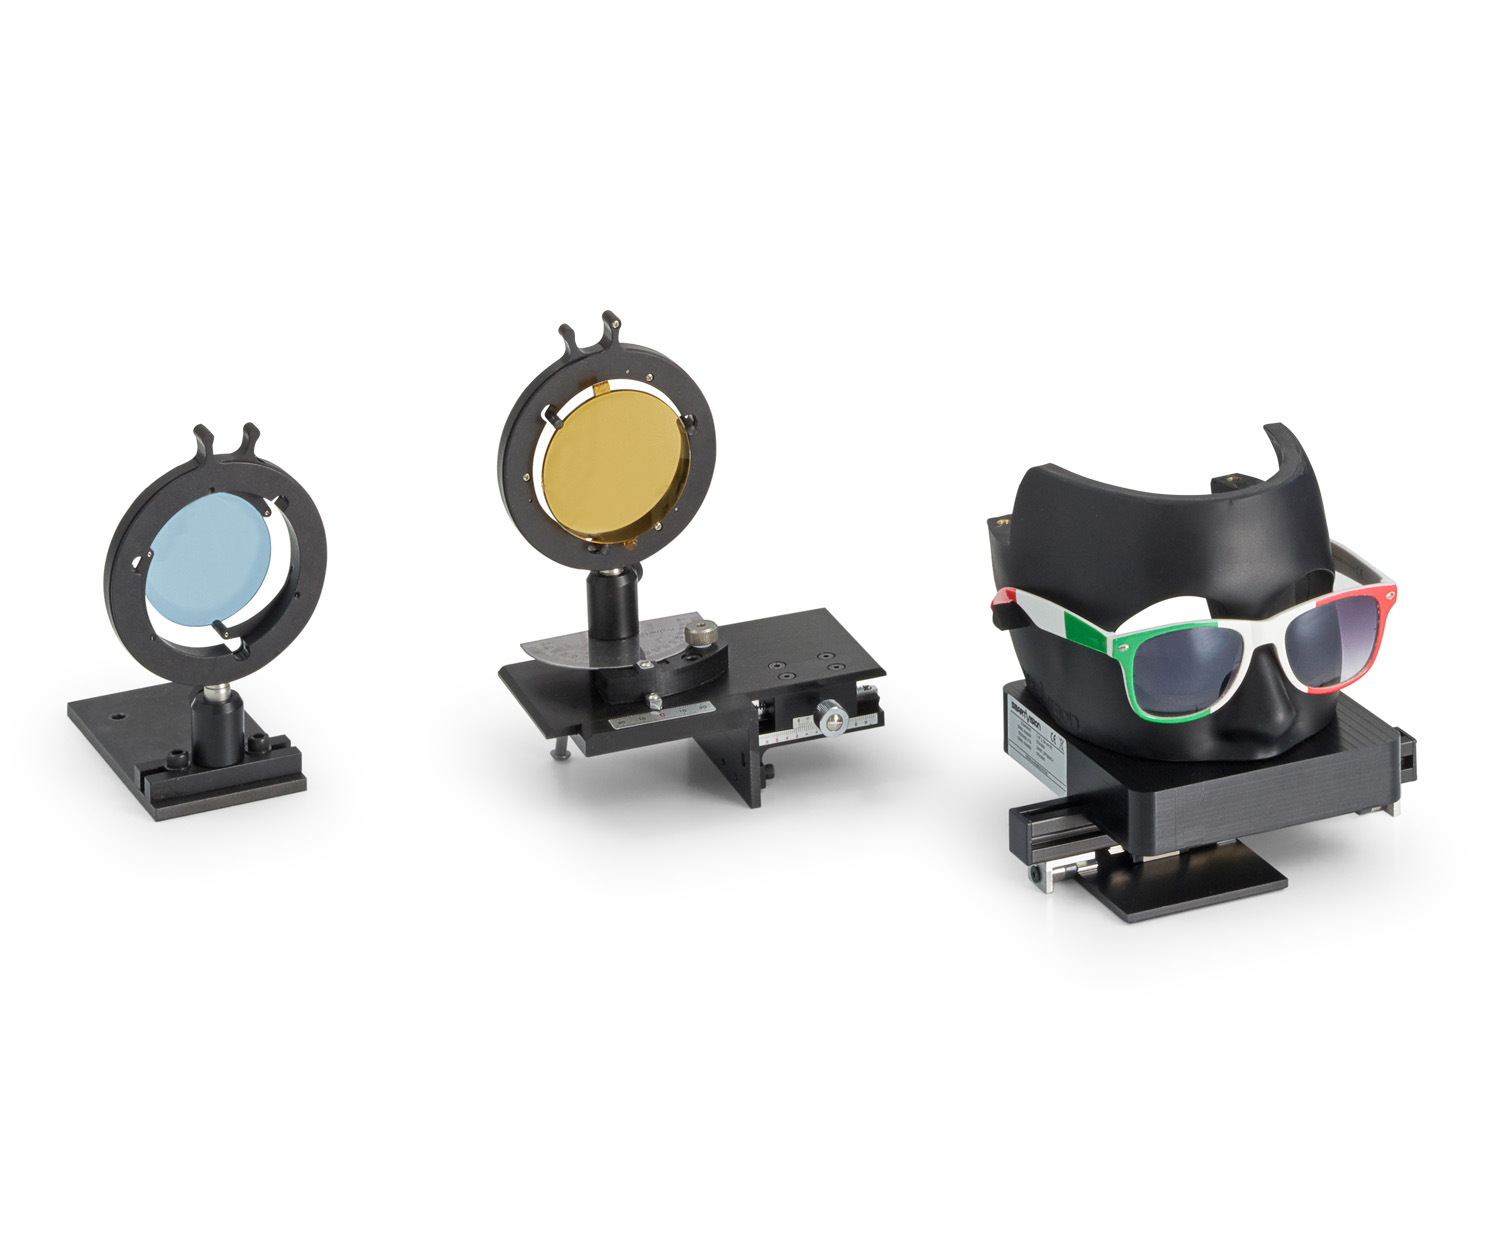 Two solution to perform an automatic check of optical powers of SunGlasses and SunLenses